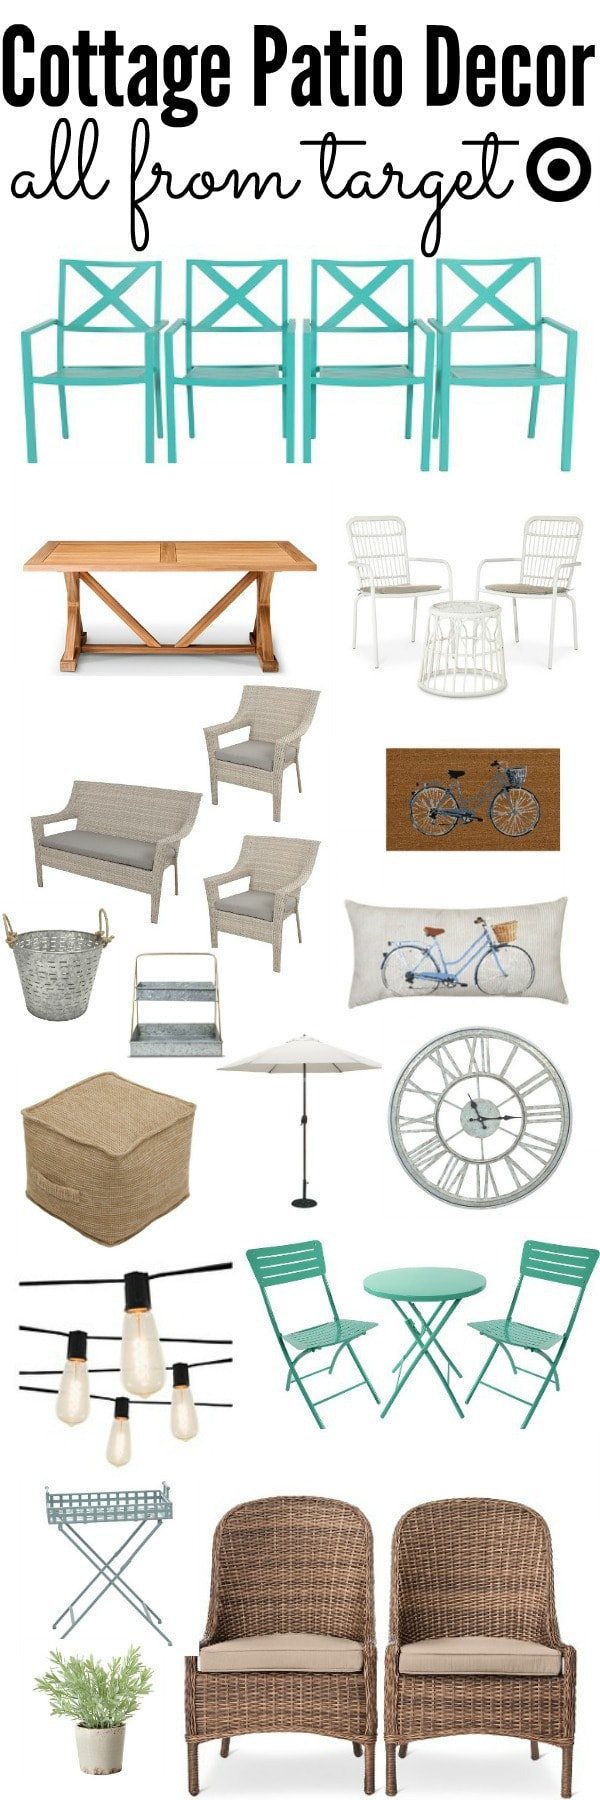 cottage style patio decor - cozy rustic style patio decor all from Target at an affordable price. A great pin for spring & summer patio decor!!